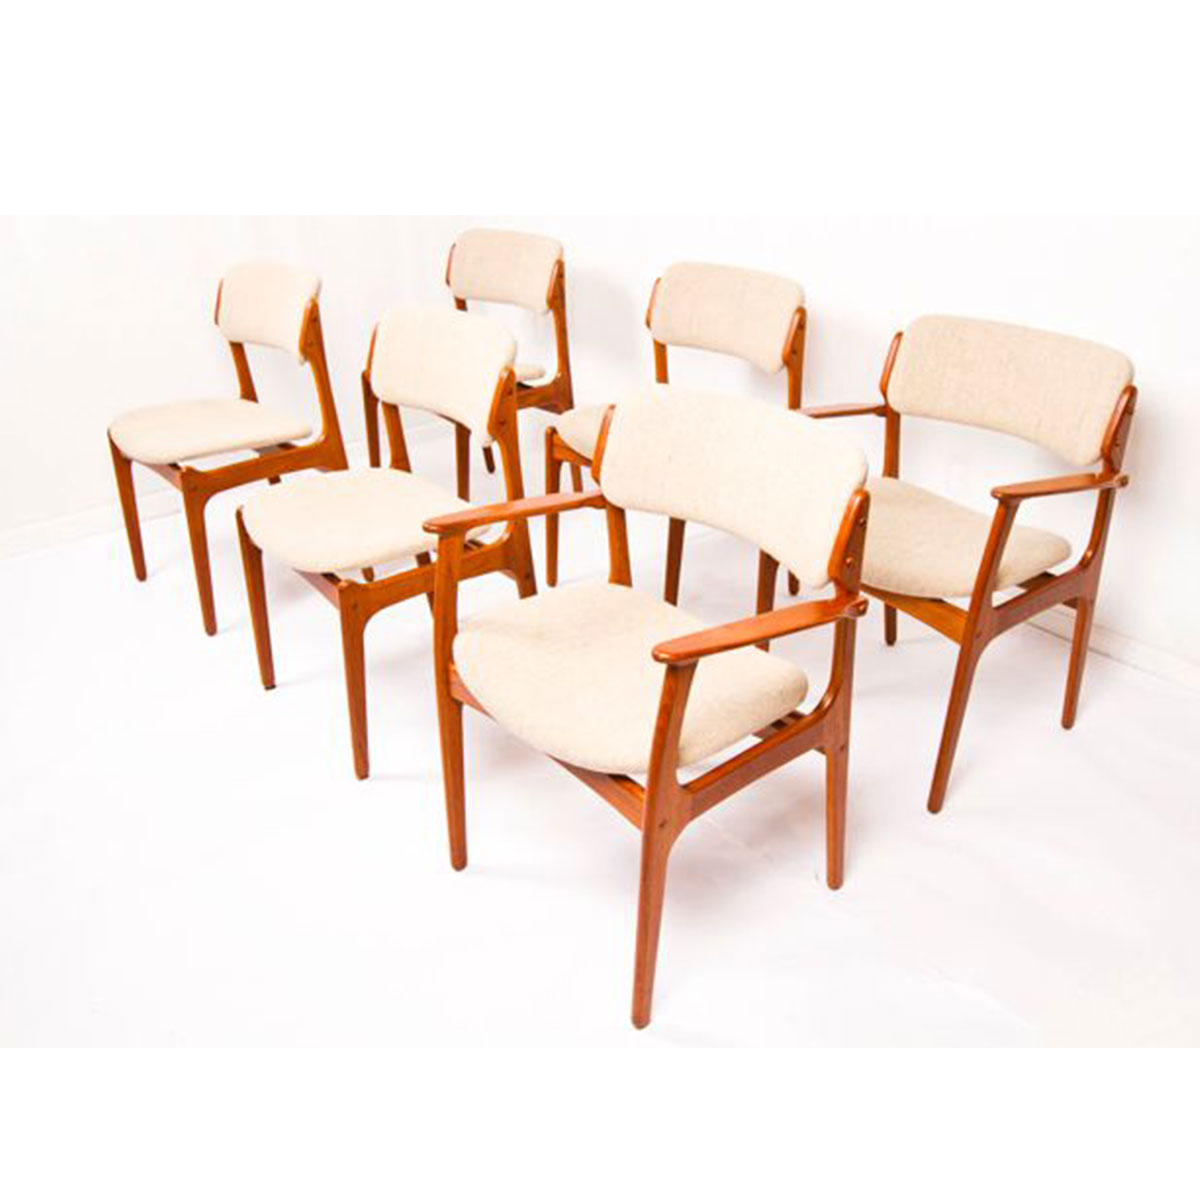 Set of 6 Teak Erik Buch Dining Chairs